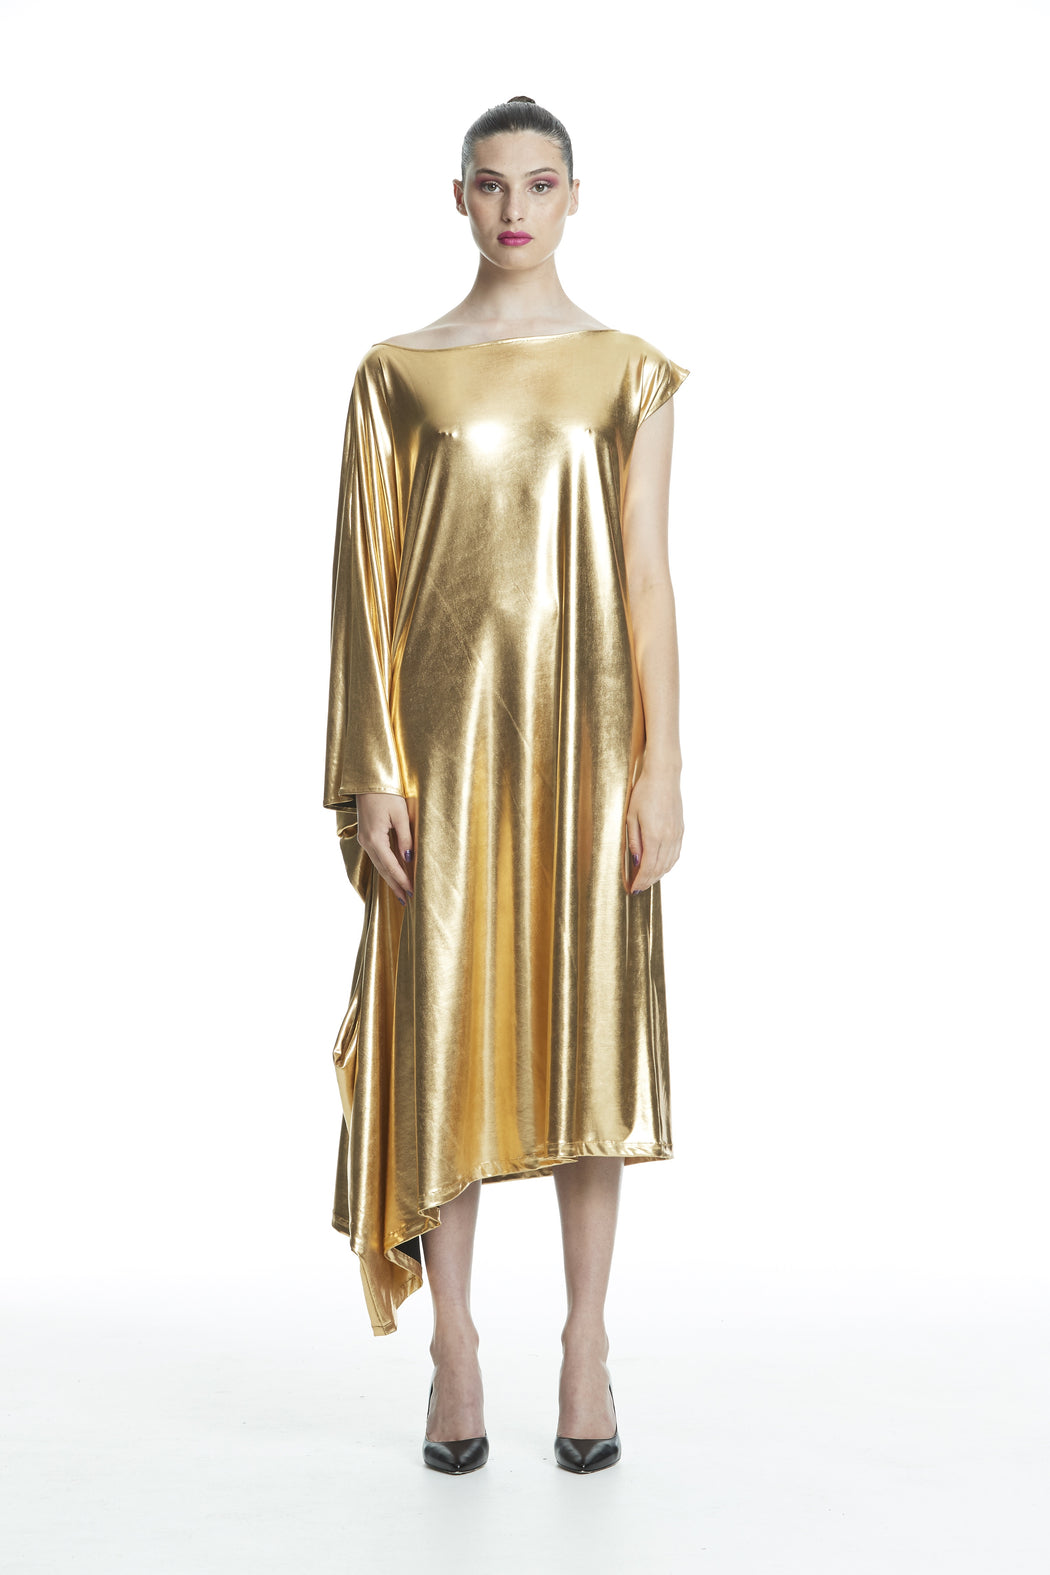 WORLD 4461 Bad Behaviour Dress Gold